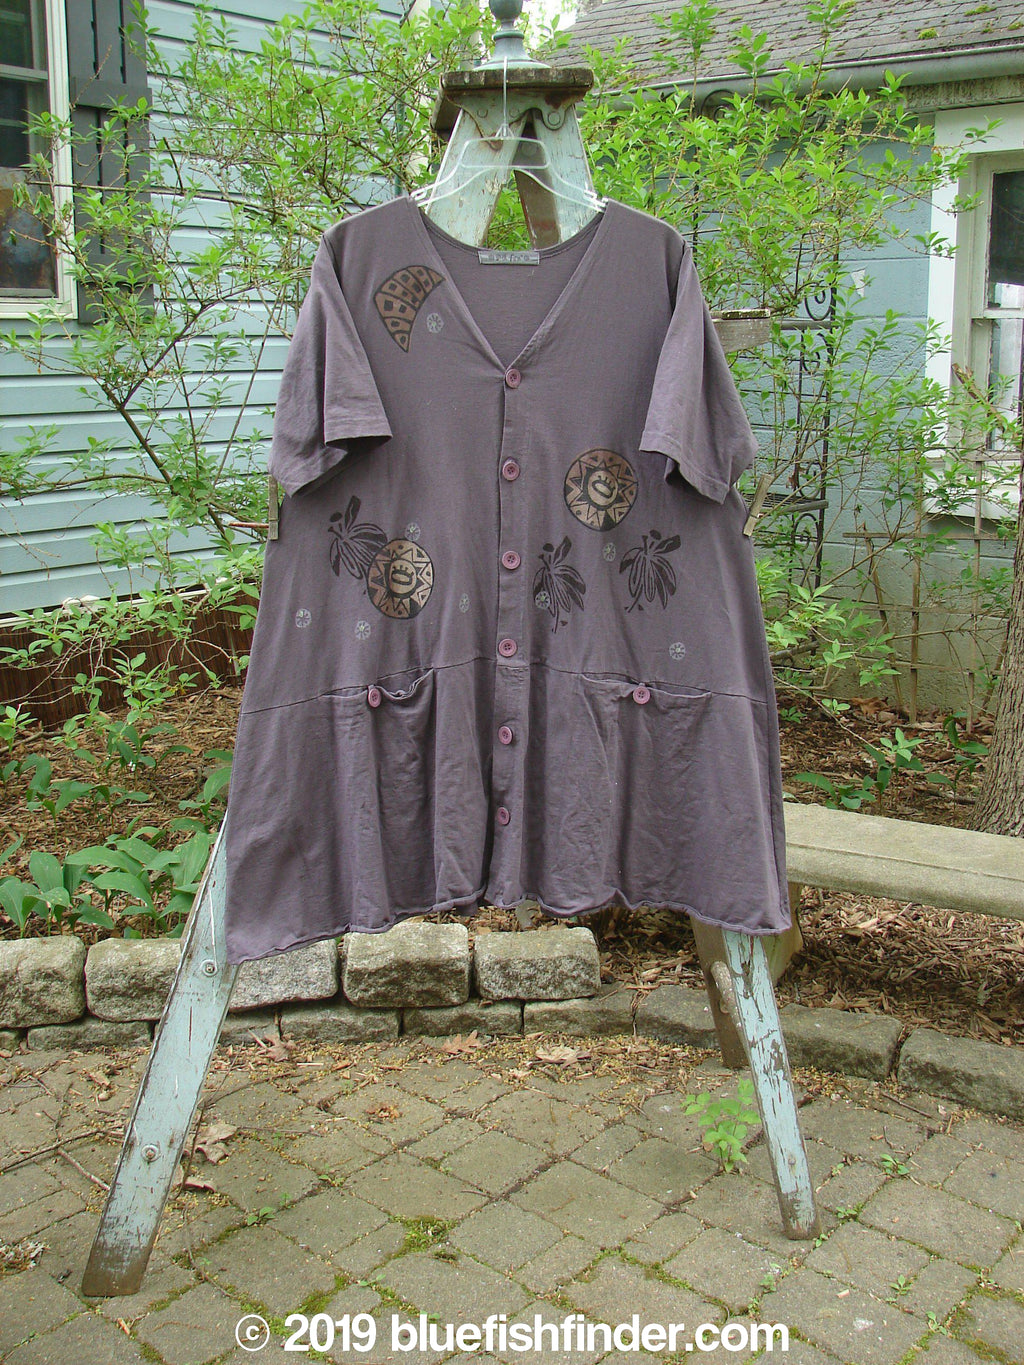 Vintage Blue Fish Clothing 1996 Sowing Dress Star Sun Violet Field Size 2- Bluefishfinder.com